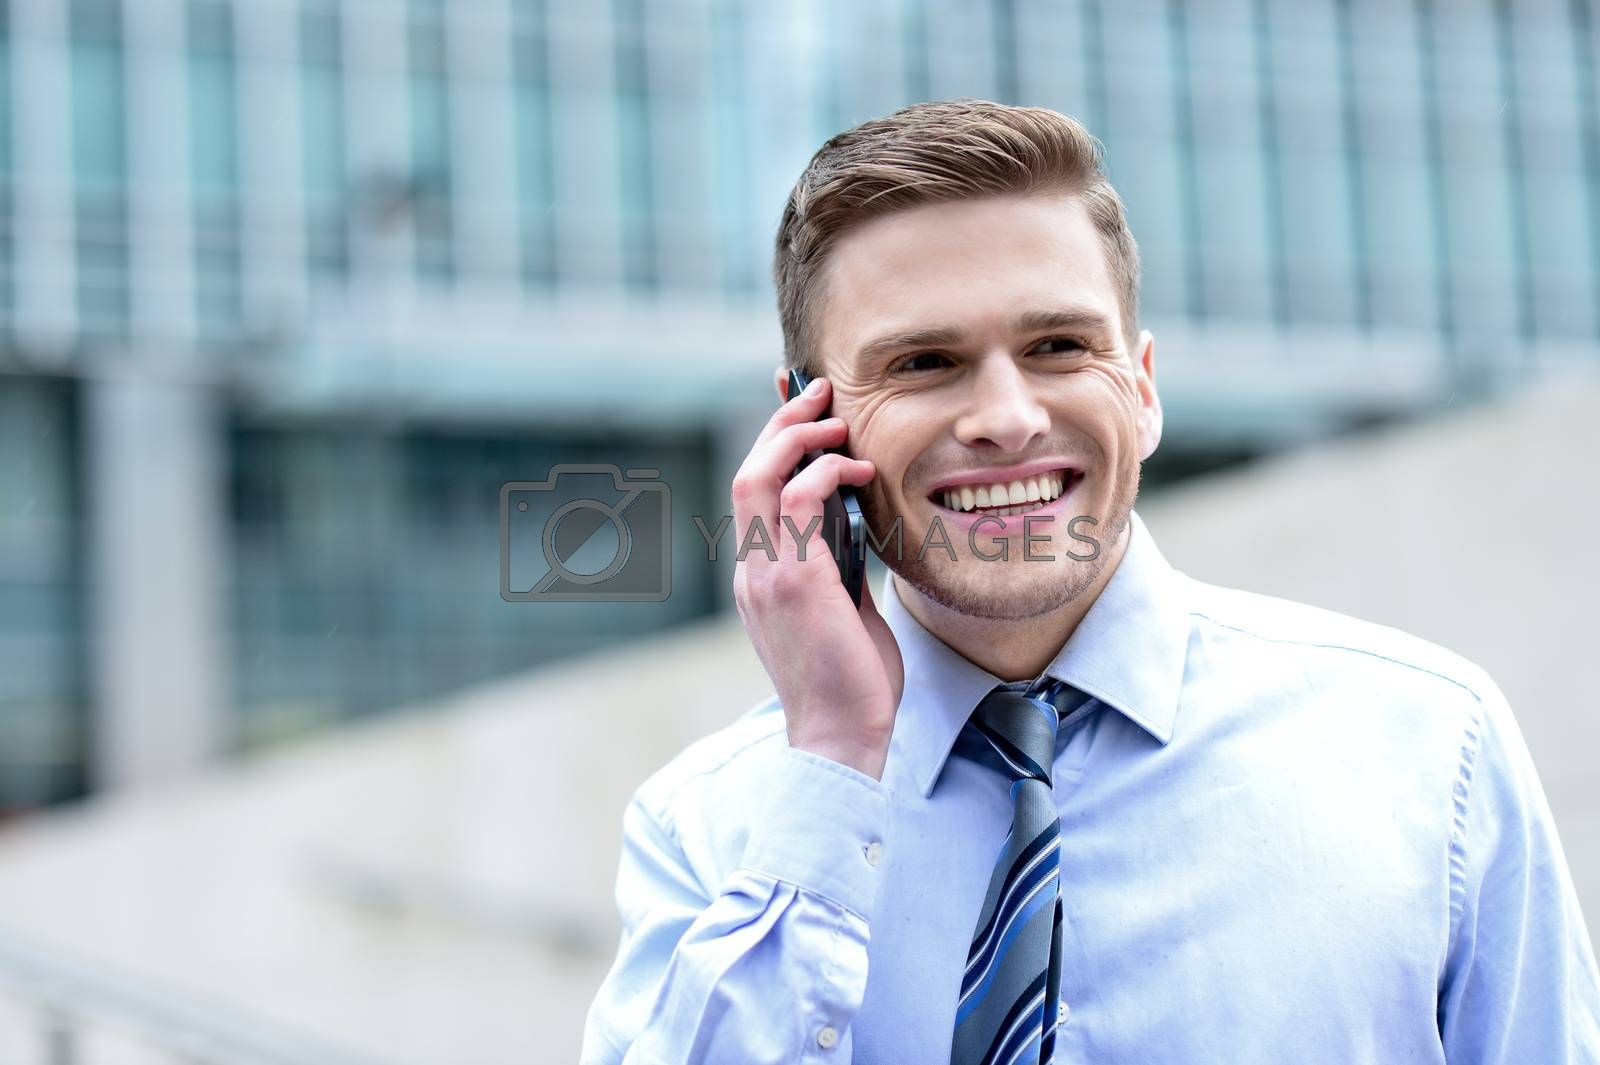 Royalty free image of Smiling businessman talking on the phone by stockyimages